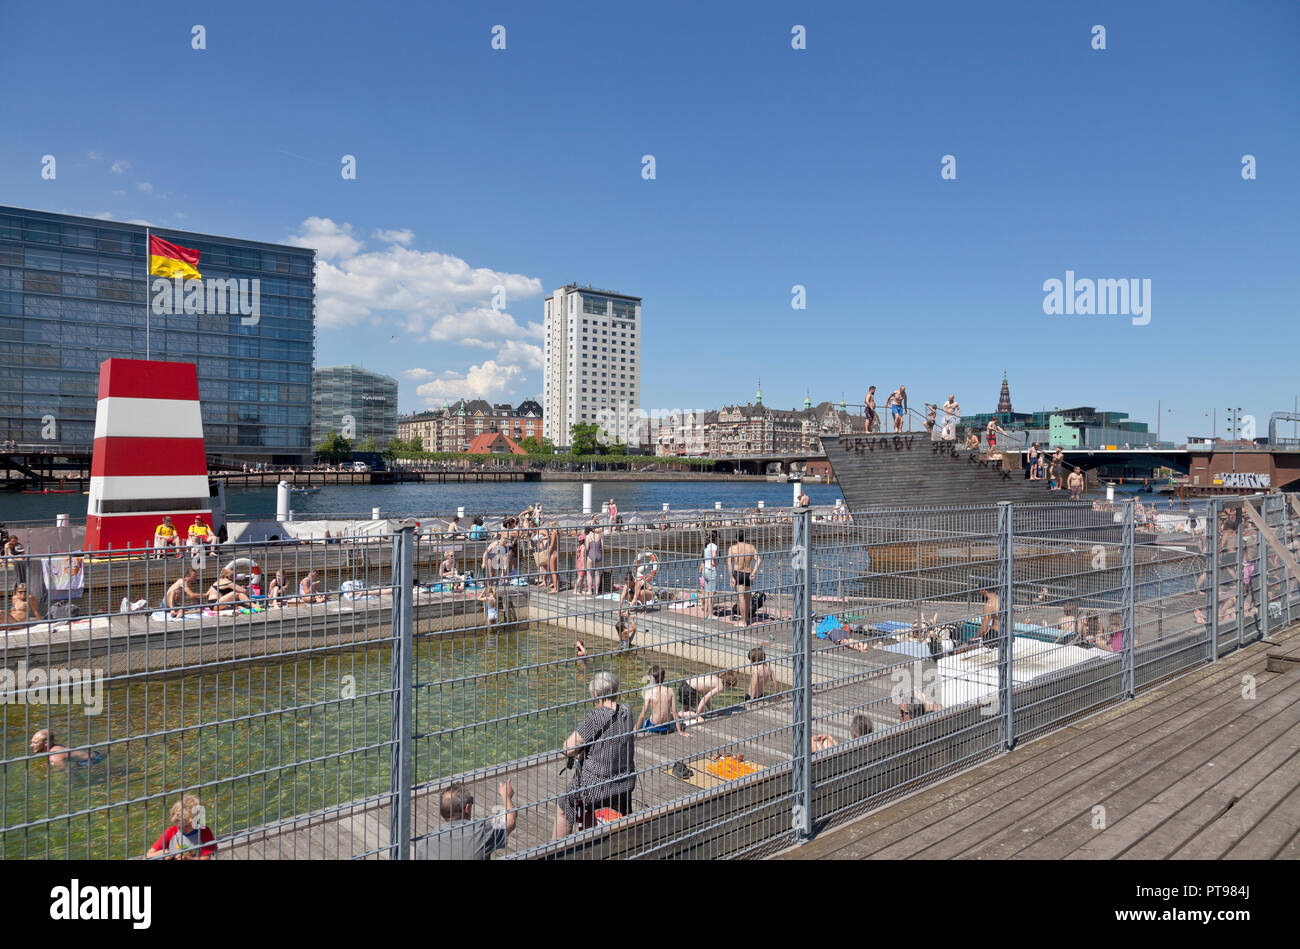 Islands Brygge Harbour Bath Copenhagen, Denmark, on a sunny afternoon. Stock Photo